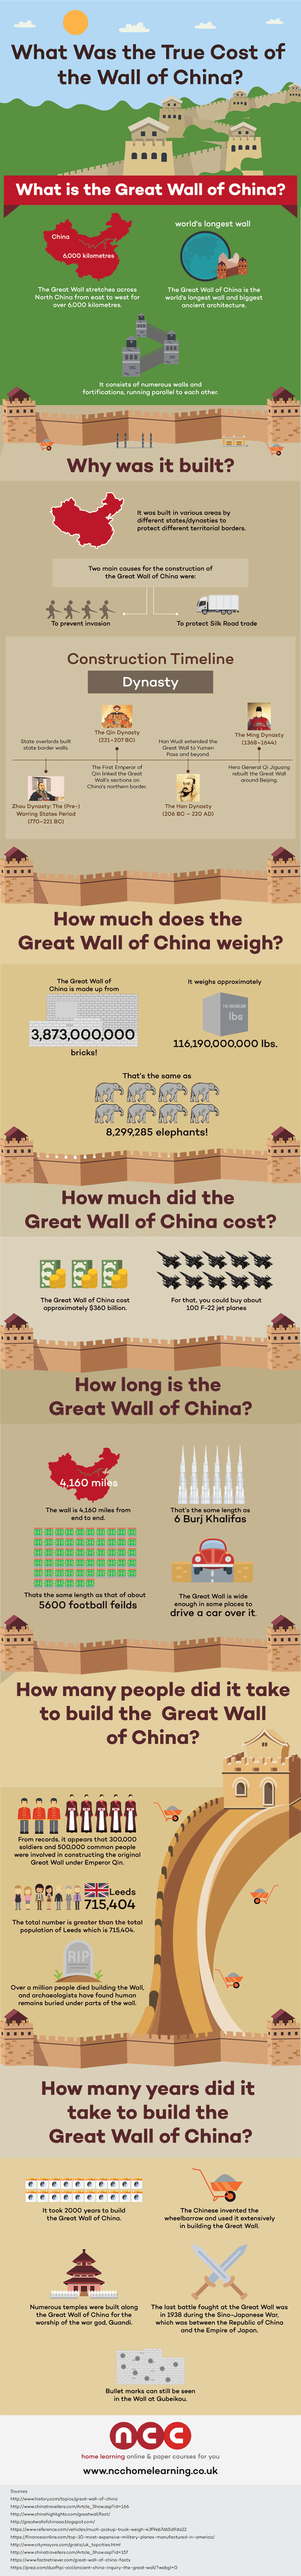 What was the true cost of the great wall of China - infographic